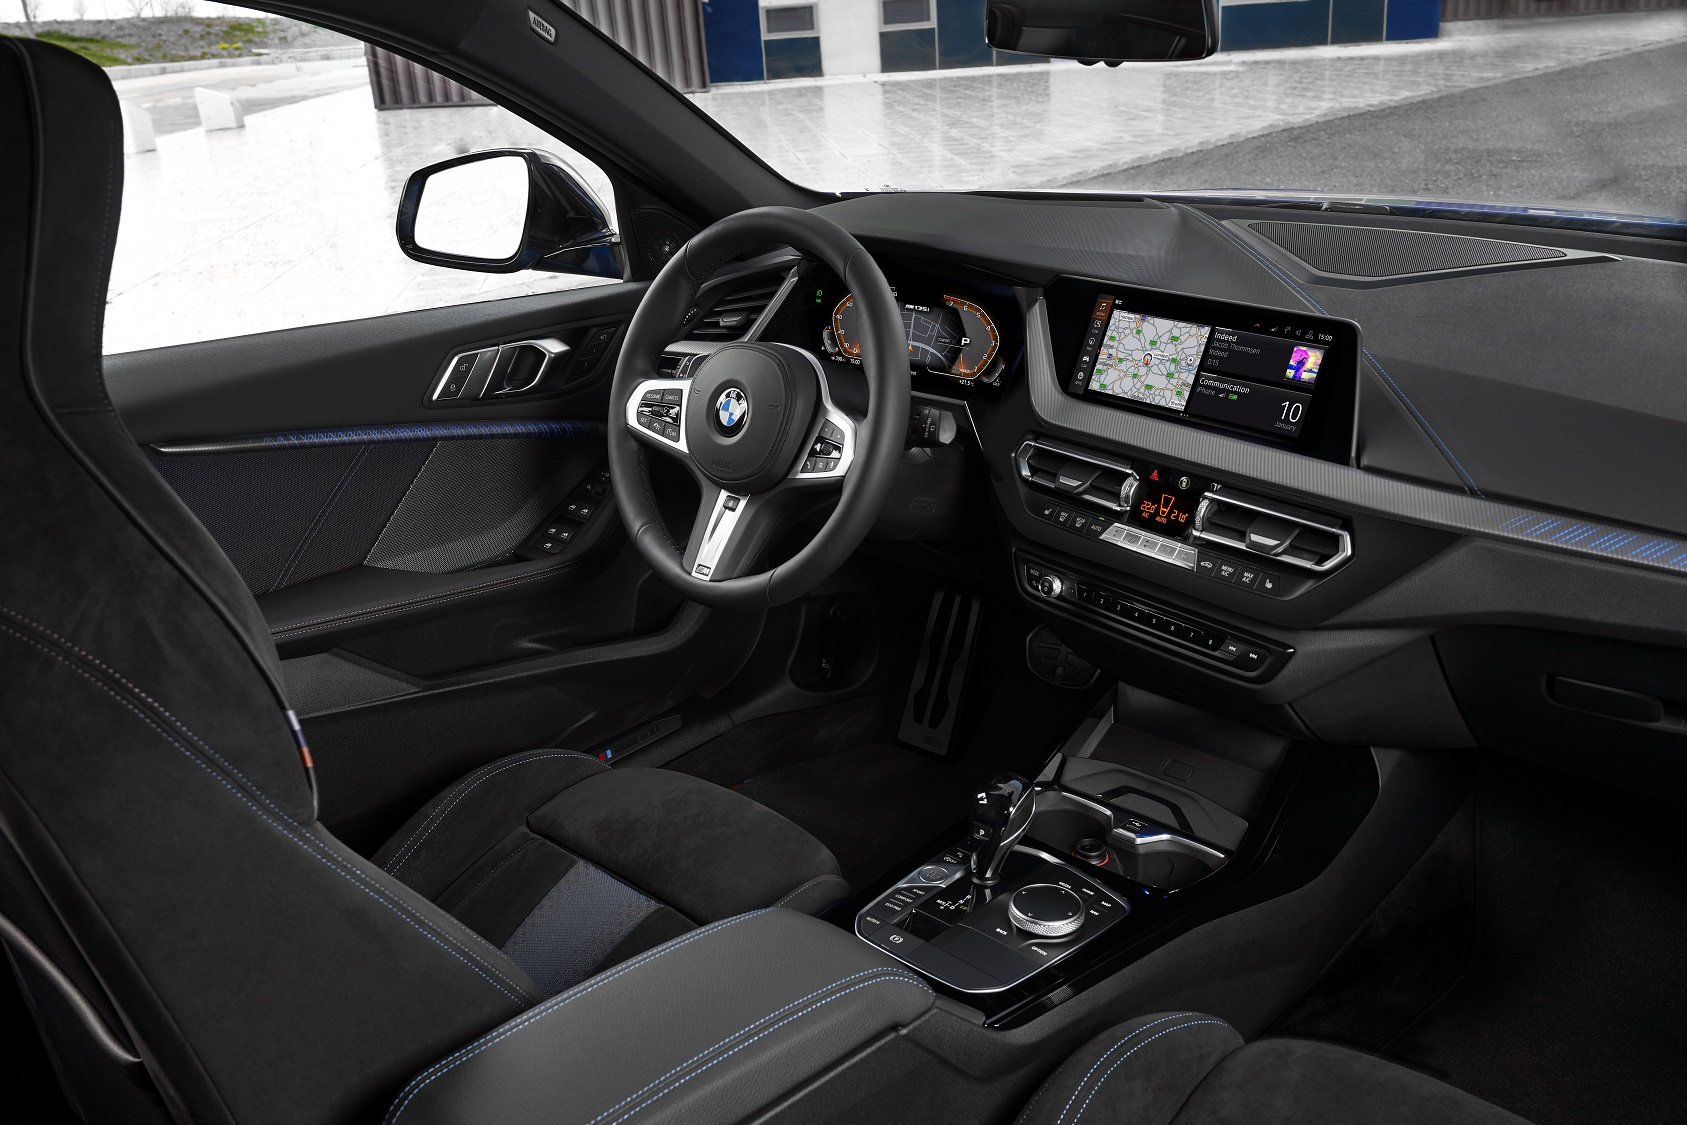 BMW 1-Series interior cockpit.jpg